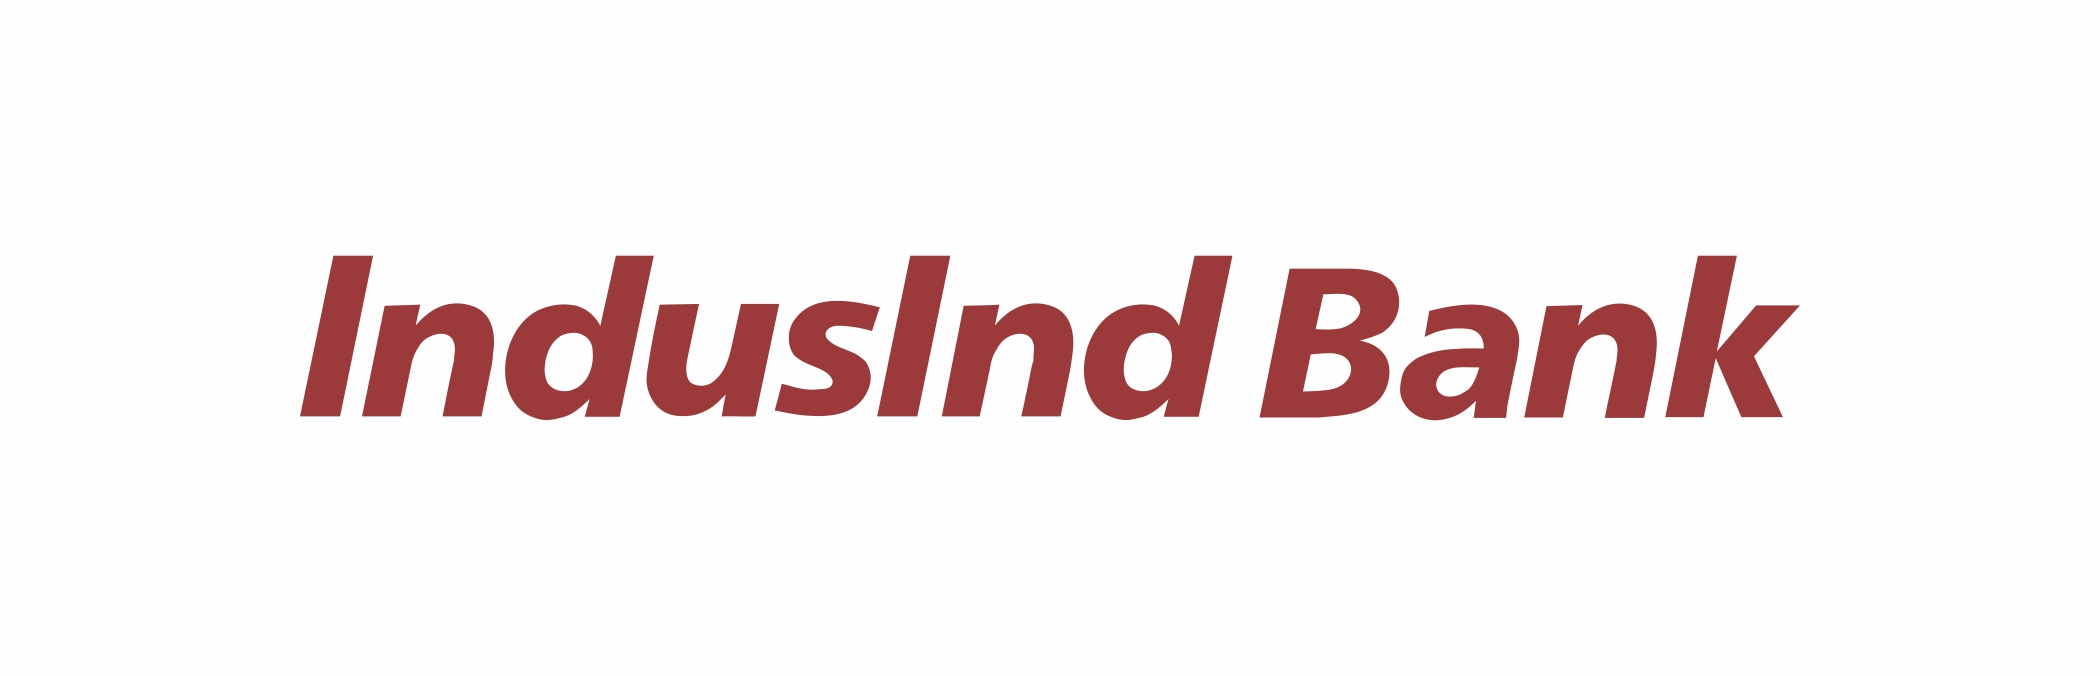 IndusInd Bank - Old Palasia,Indore - logo